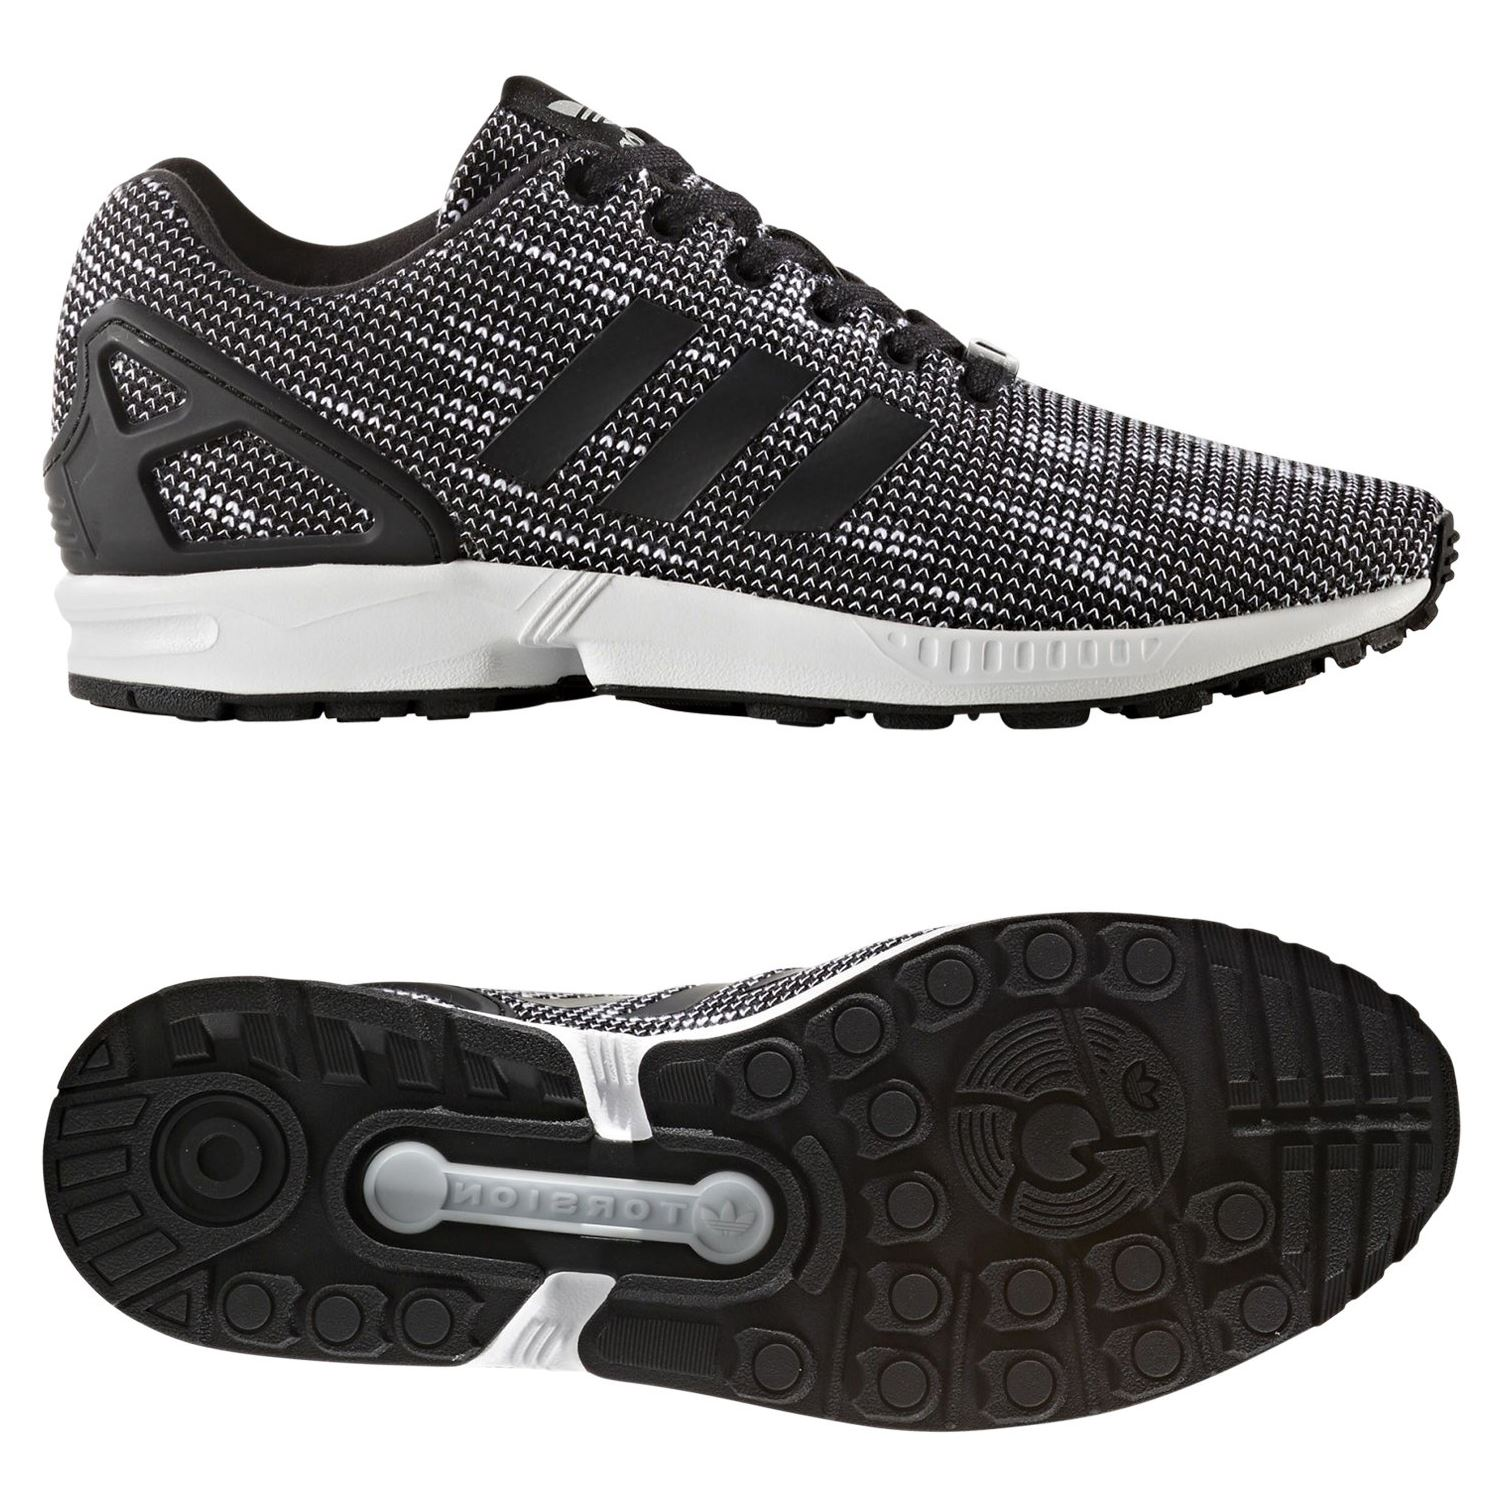 promo code 358f2 6b3e5 Details about adidas ORIGINALS ZX FLUX TRAINERS BLACK SNEAKERS SHOES MEN'S  TORSION 3 STRIPES